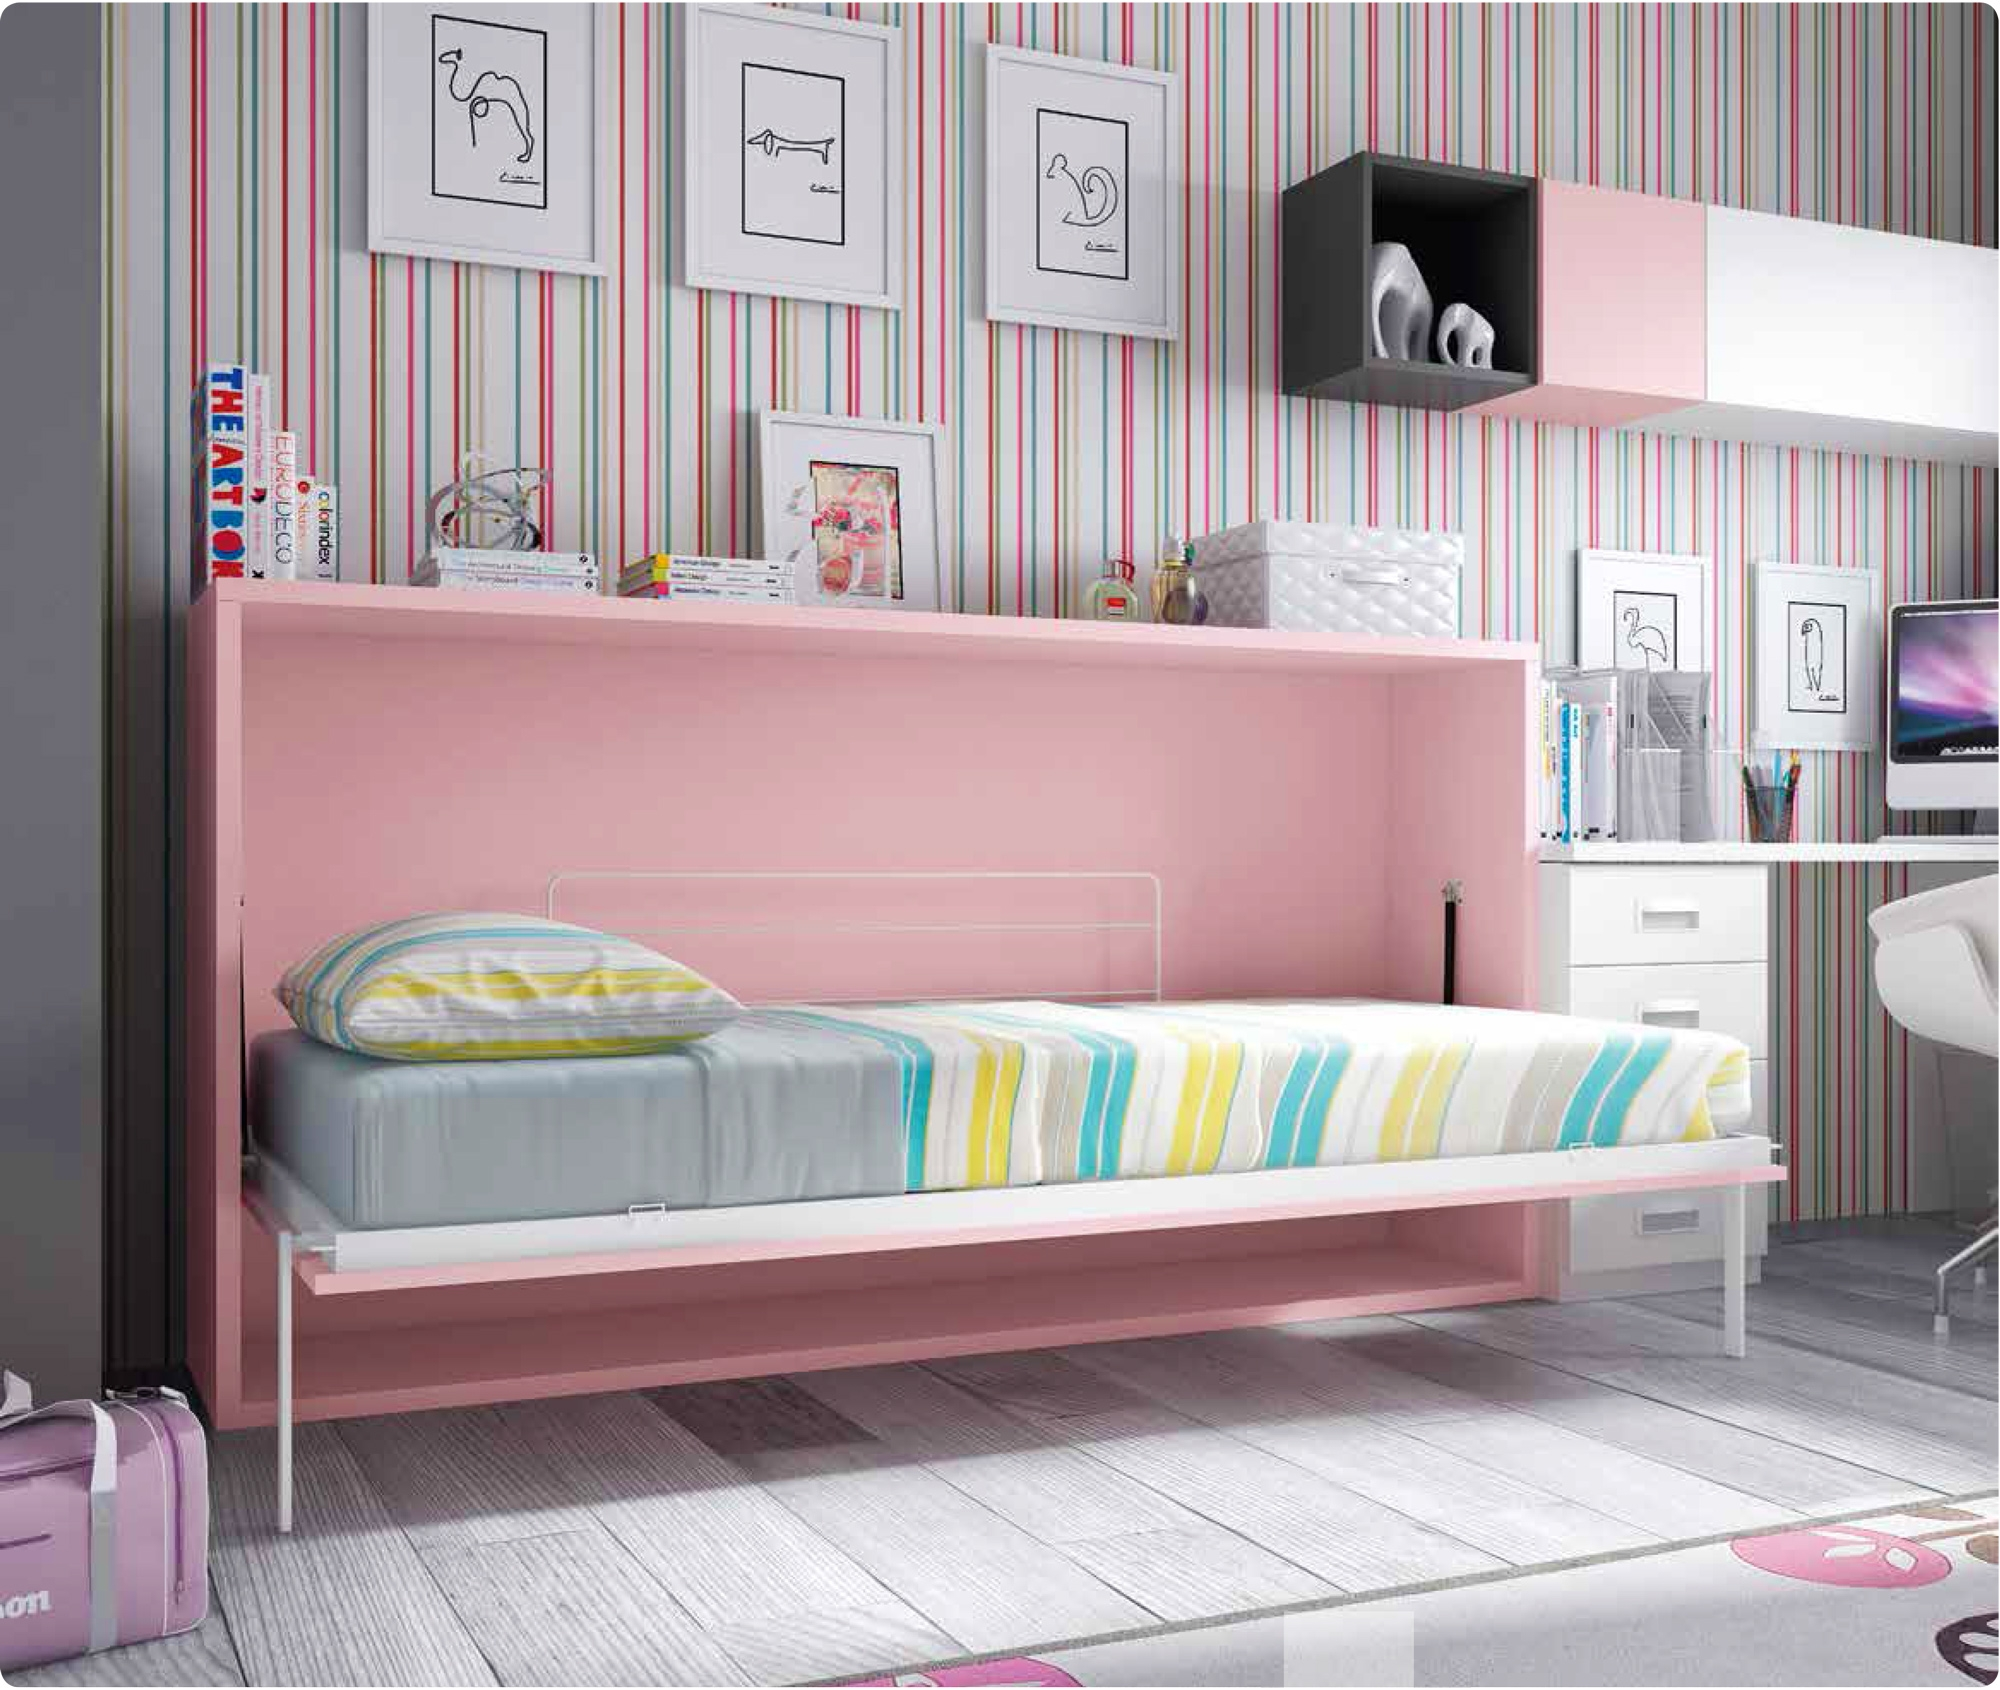 lit escamotable mural avec bureau personnaliser glicerio so nuit. Black Bedroom Furniture Sets. Home Design Ideas